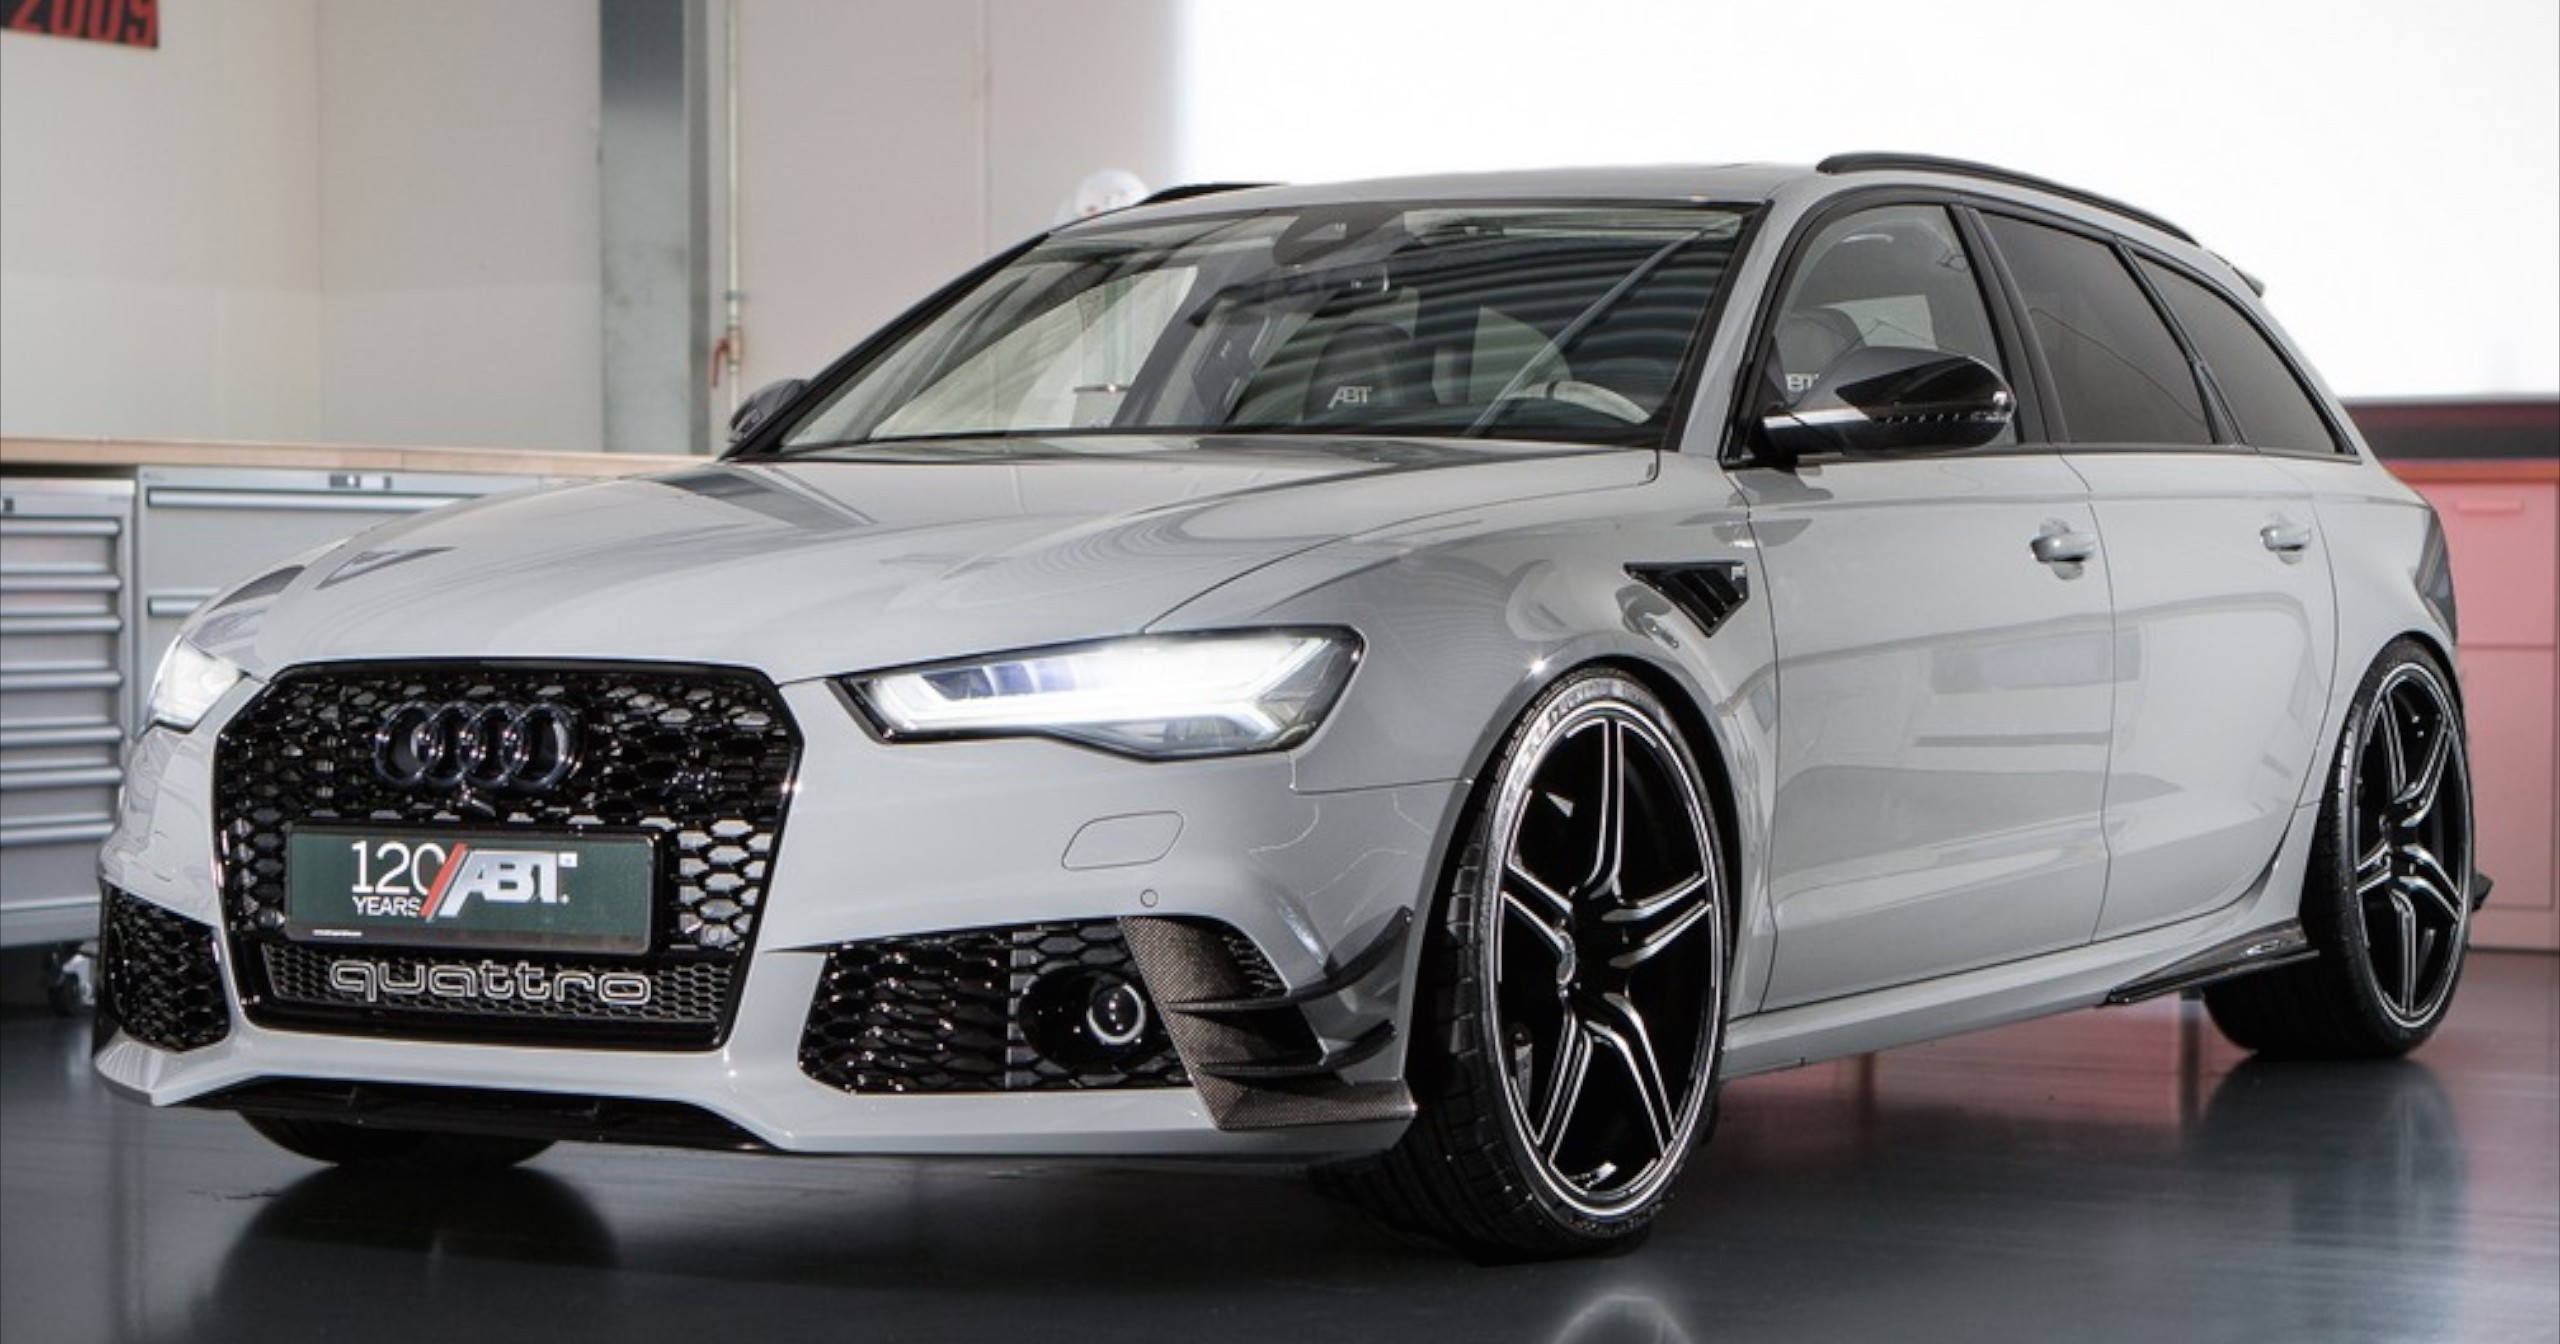 Abt Rs6 Avant 730 Hp 920 Nm Limited To 12 Units Paul